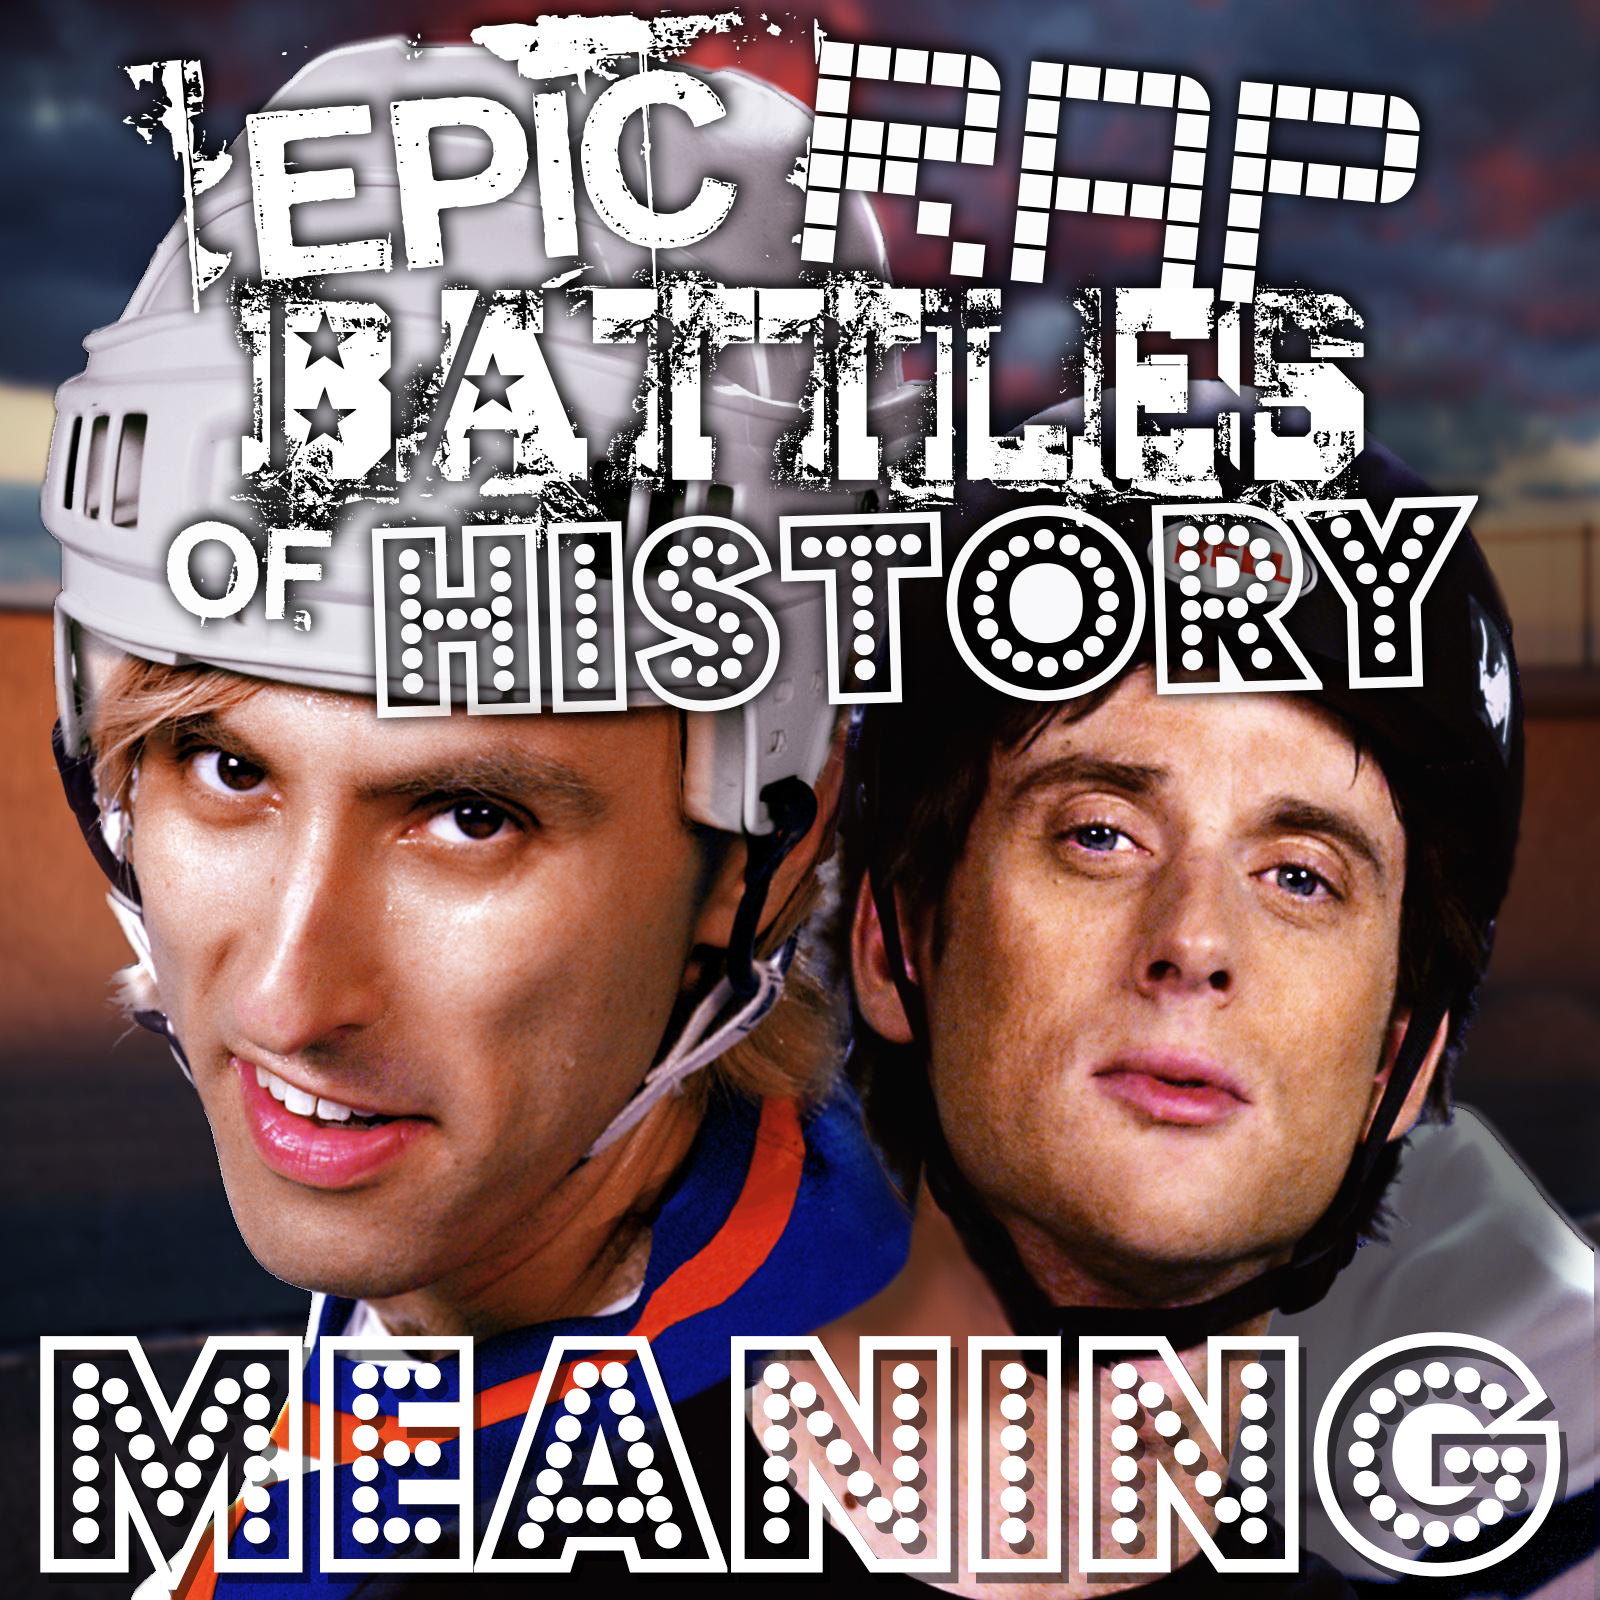 Tony Hawk vs Wayne Gretzky/Rap Meanings